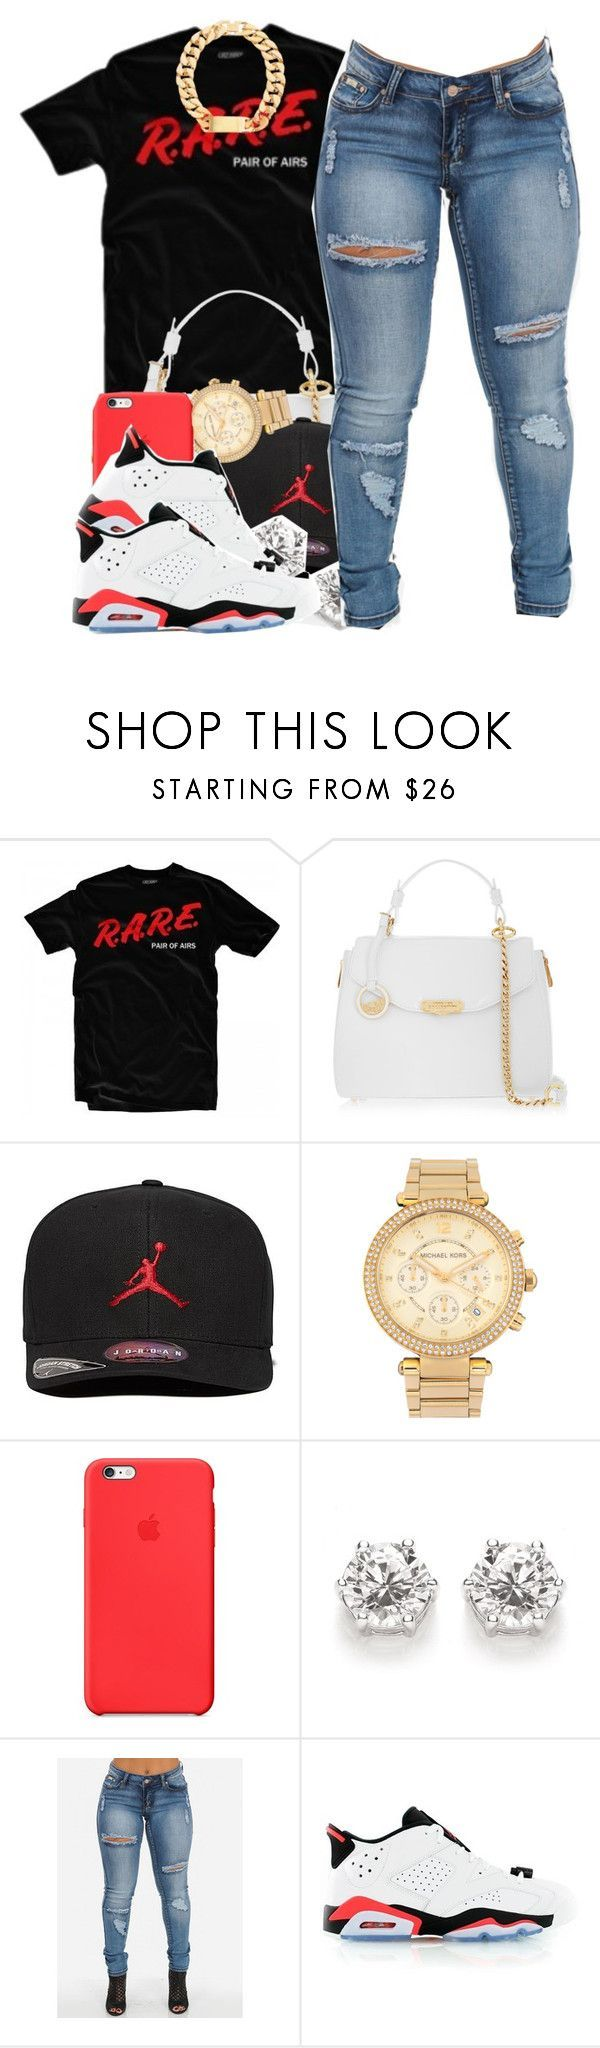 """New Year, Same Style"" by polyvoreitems5 ❤ liked on Polyvore featuring Versace, Jordan Brand, Michael Kors, Apple and Retrò"